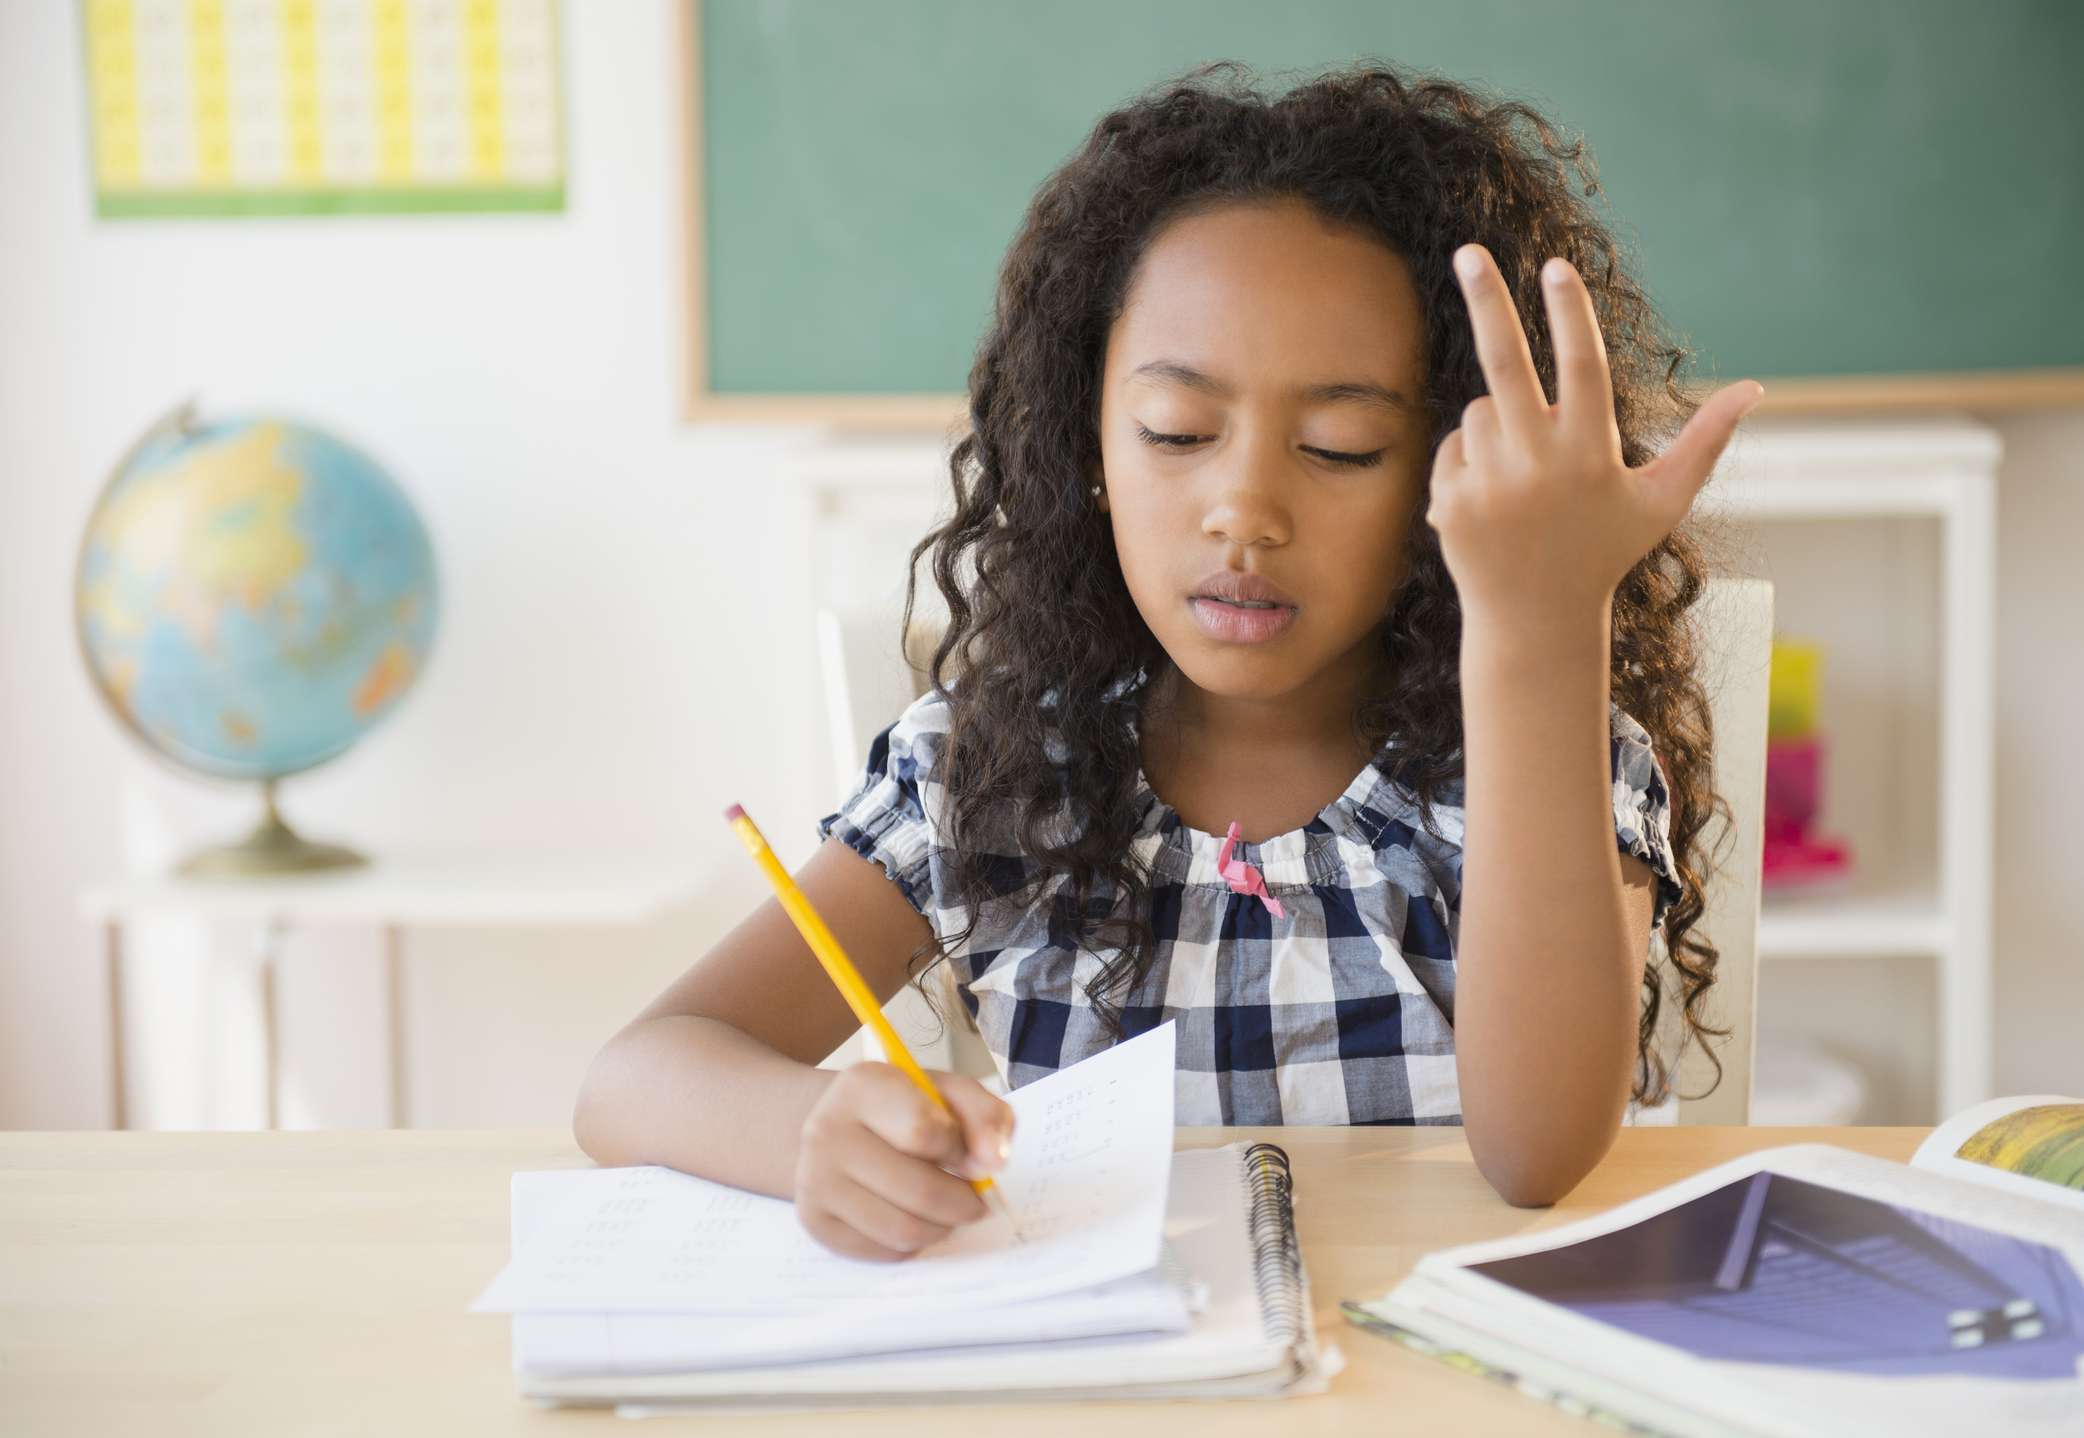 young girl counting on fingers in classroom